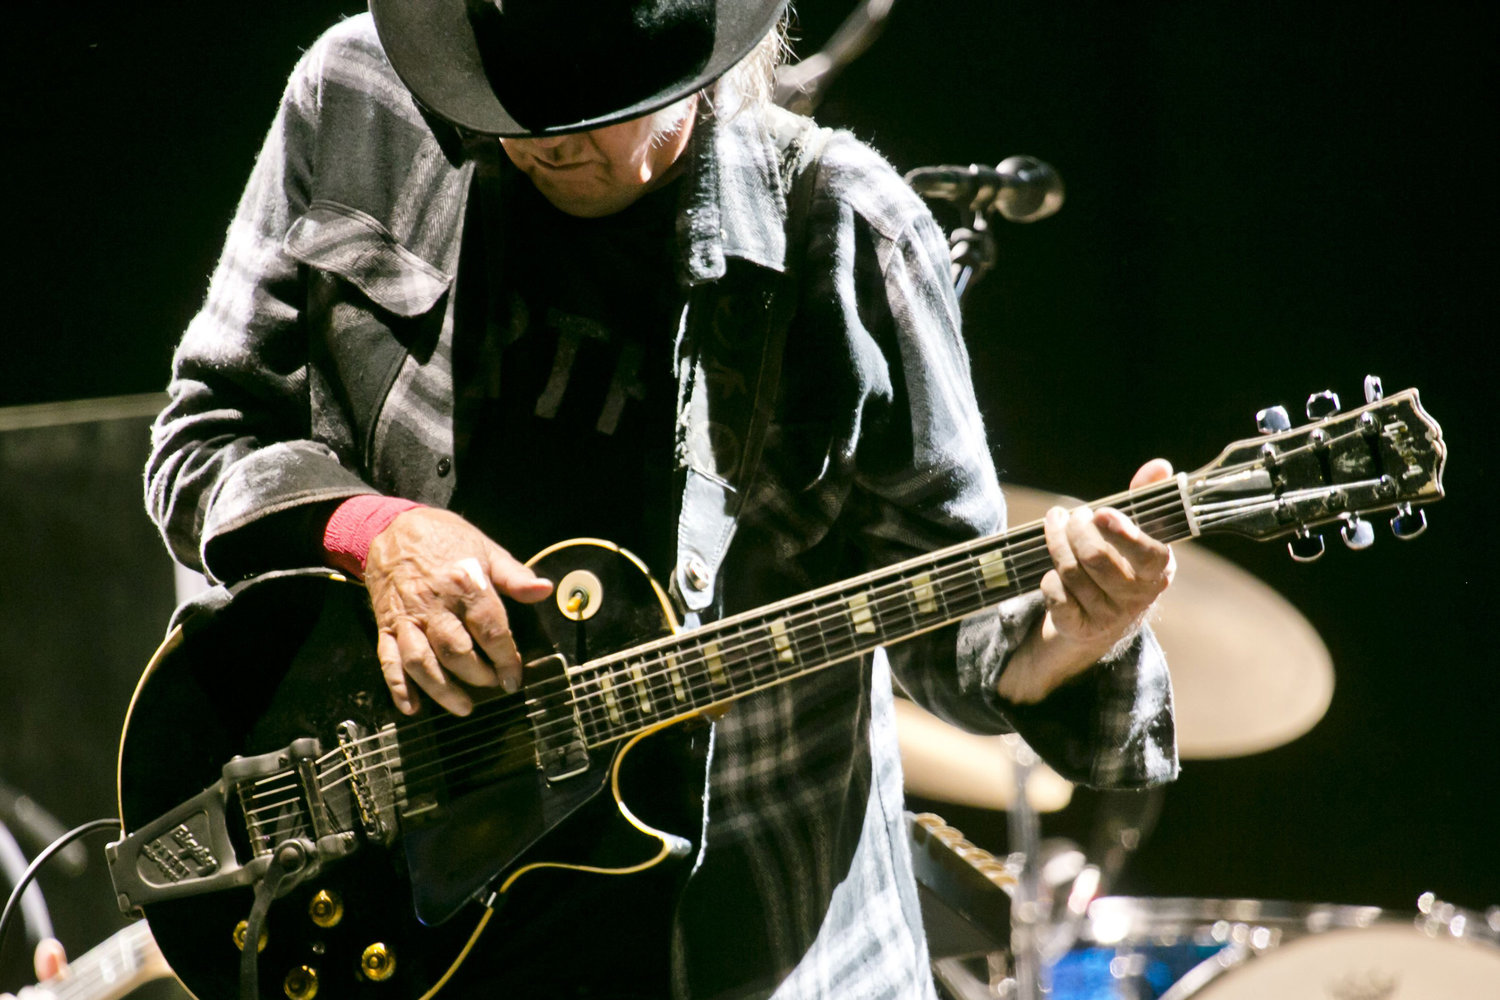 Neil Young performs at the Mad Cool Festival on June 18, 2016 in Madrid, Spain. Young will be auctioning off guitars, cars, model trains and other items for charity. (Rmv/Rex Shutterstock/Zuma Press/TNS)